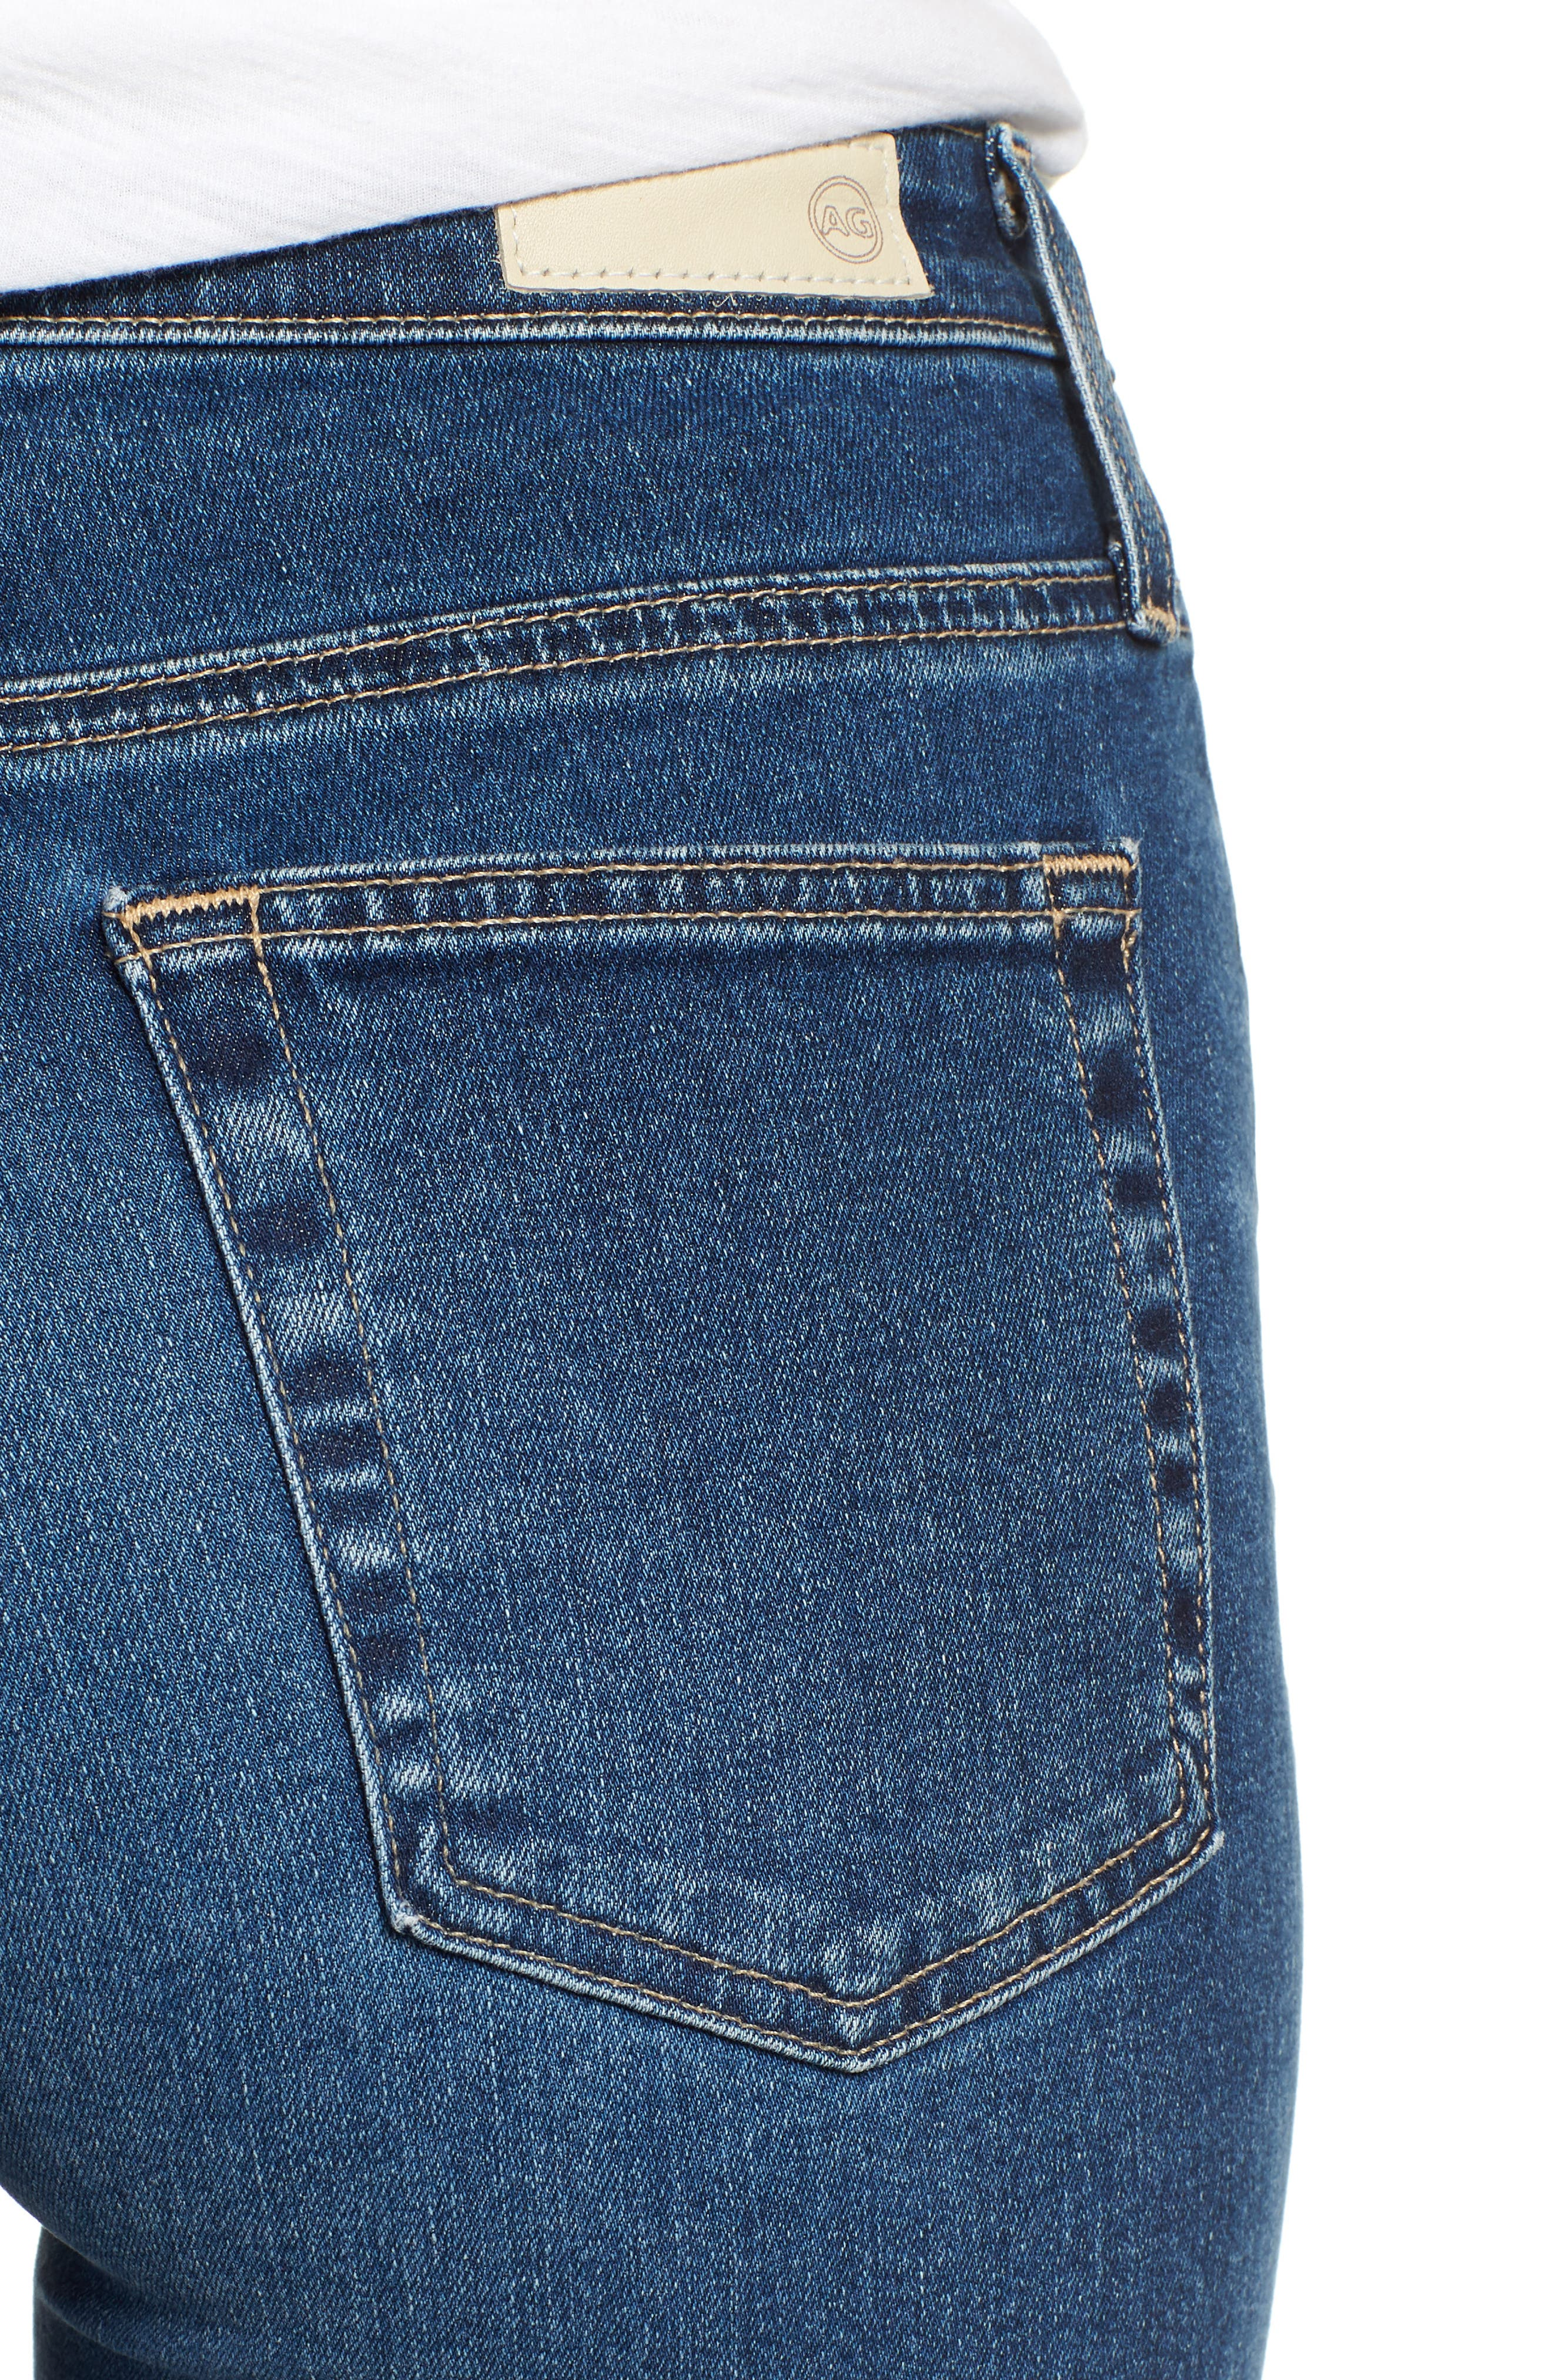 The Isabelle High Waist Crop Straight Leg Jeans,                             Alternate thumbnail 4, color,                             10 YEARS CAMBRIA